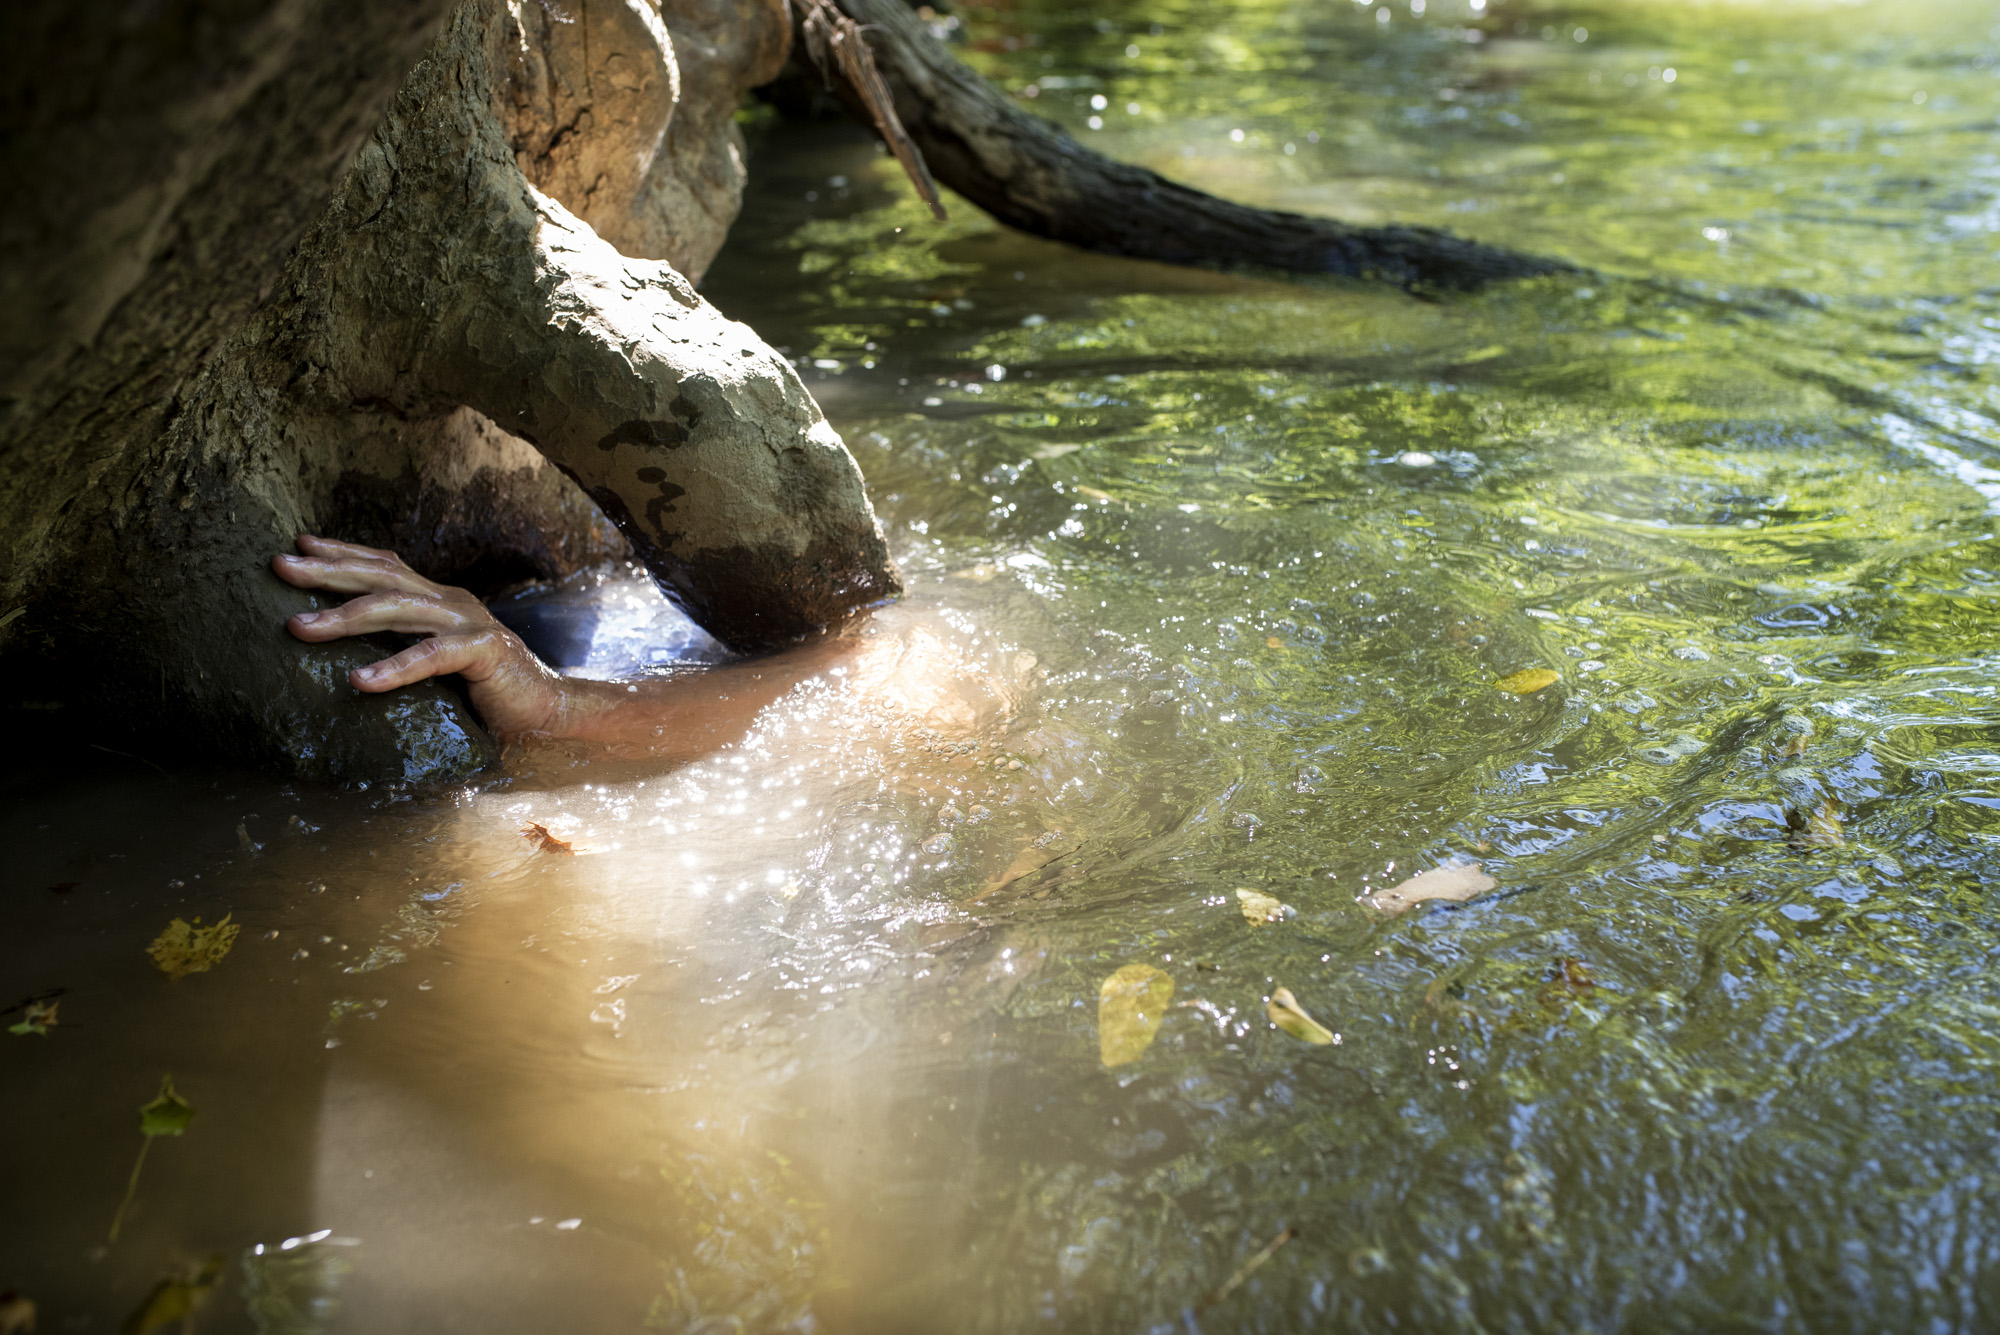 Joey Clemens grabs the roots of a tree he is searching under for snapping turtles.